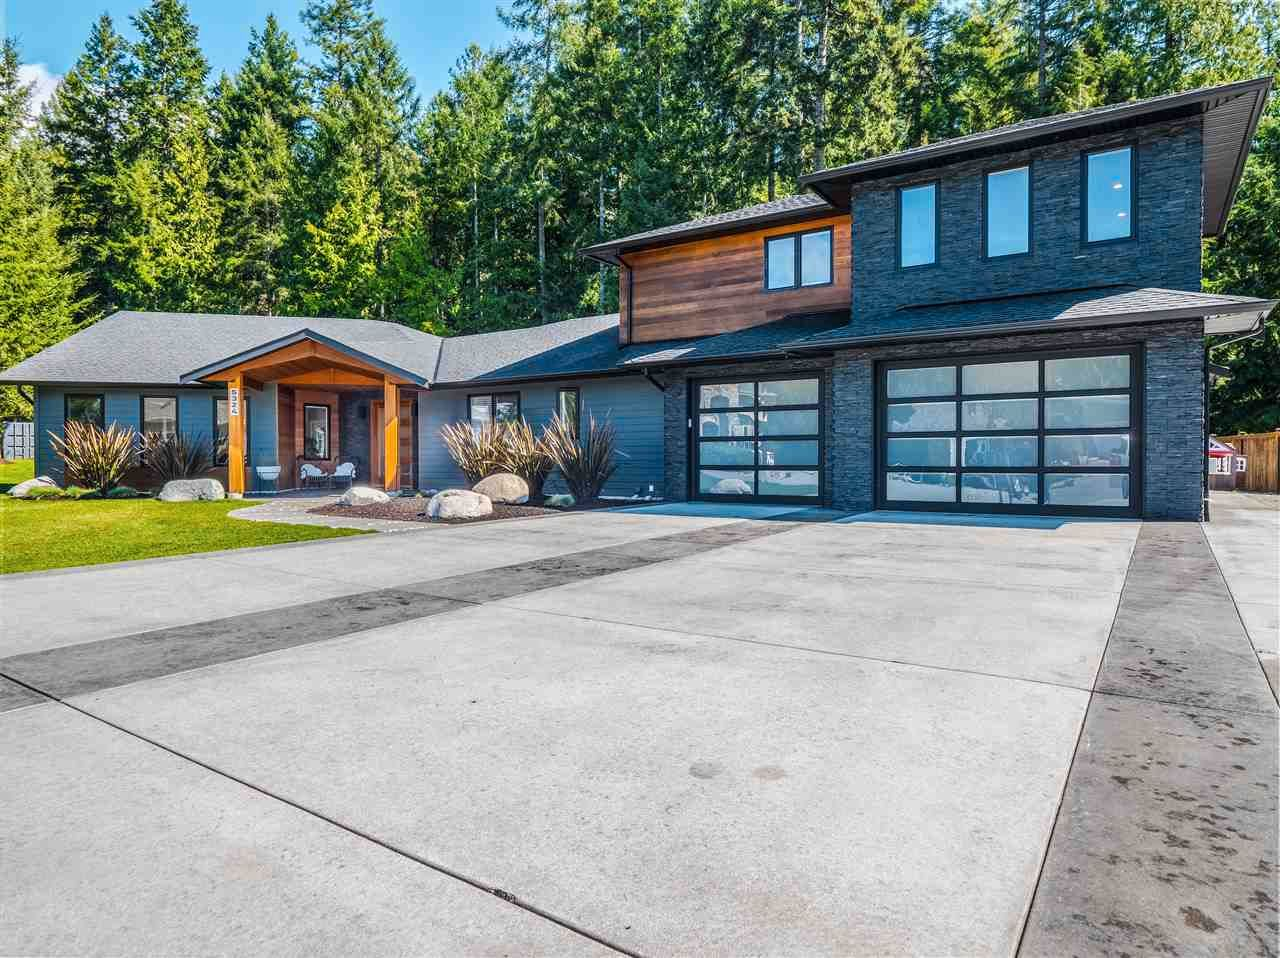 Main Photo: 5324 STAMFORD Place in Sechelt: Sechelt District House for sale (Sunshine Coast)  : MLS®# R2564542